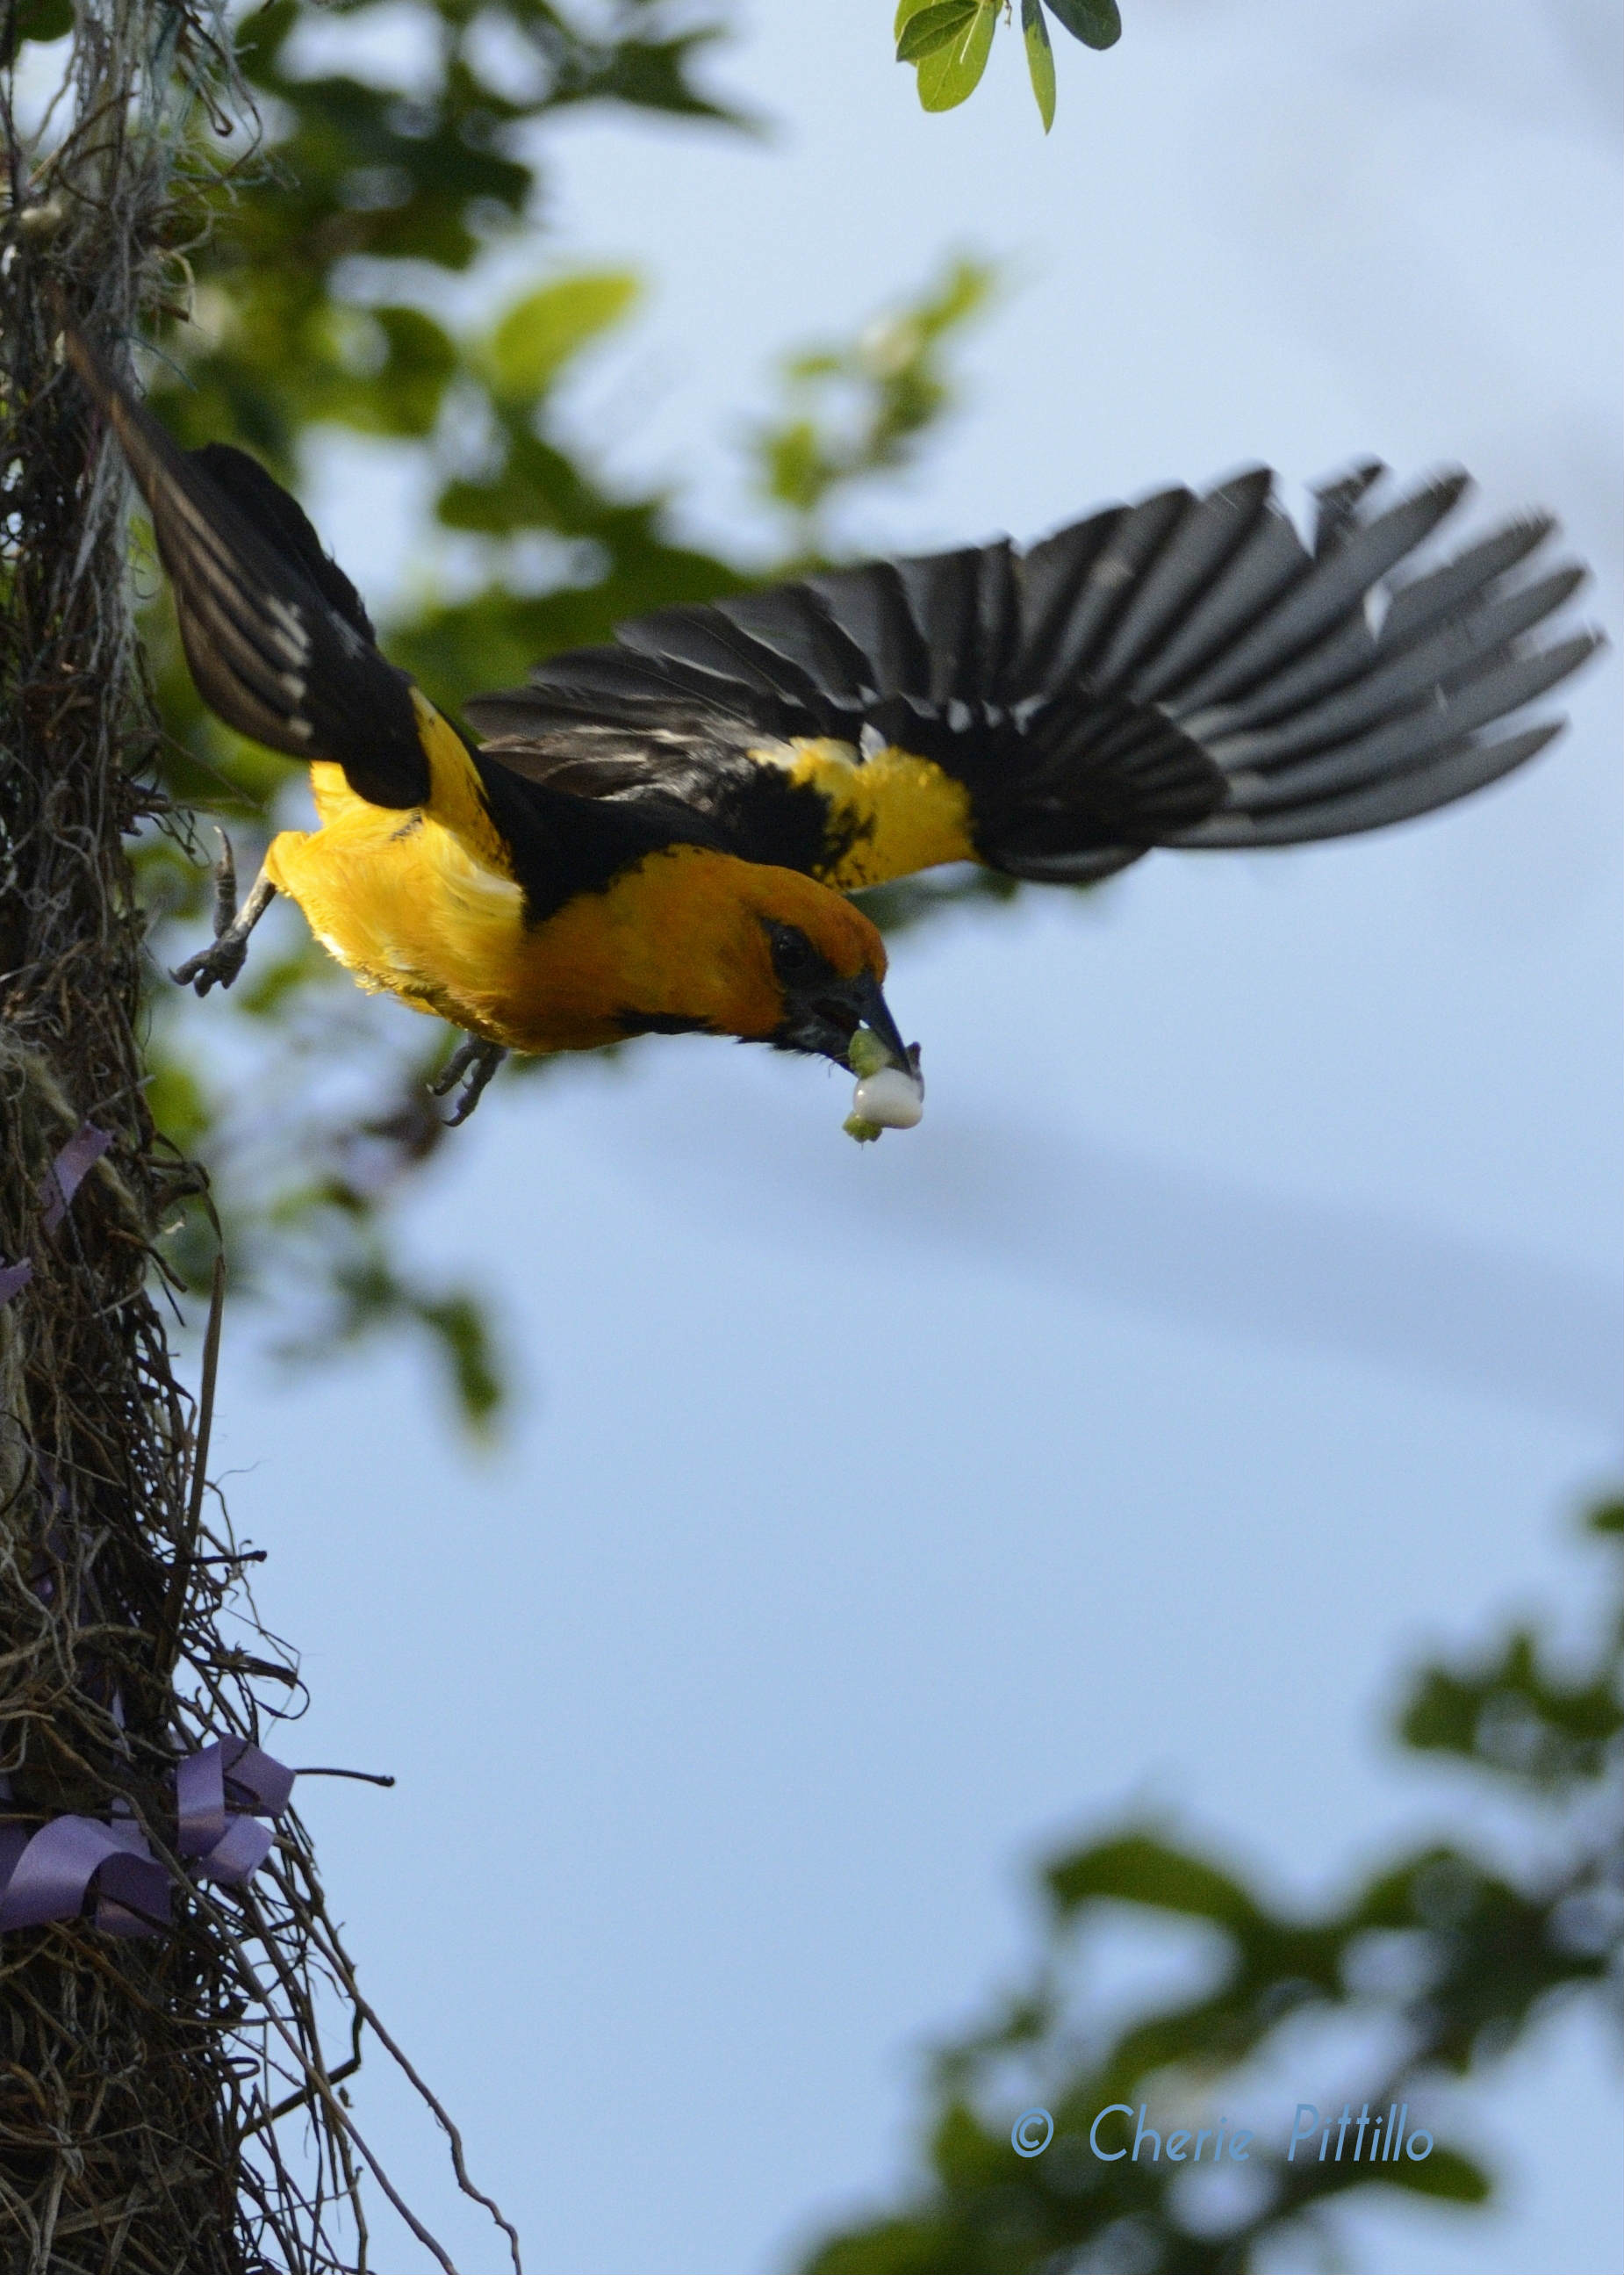 Altamira Oriole removes fecal sac like a disposable diaper from the nest